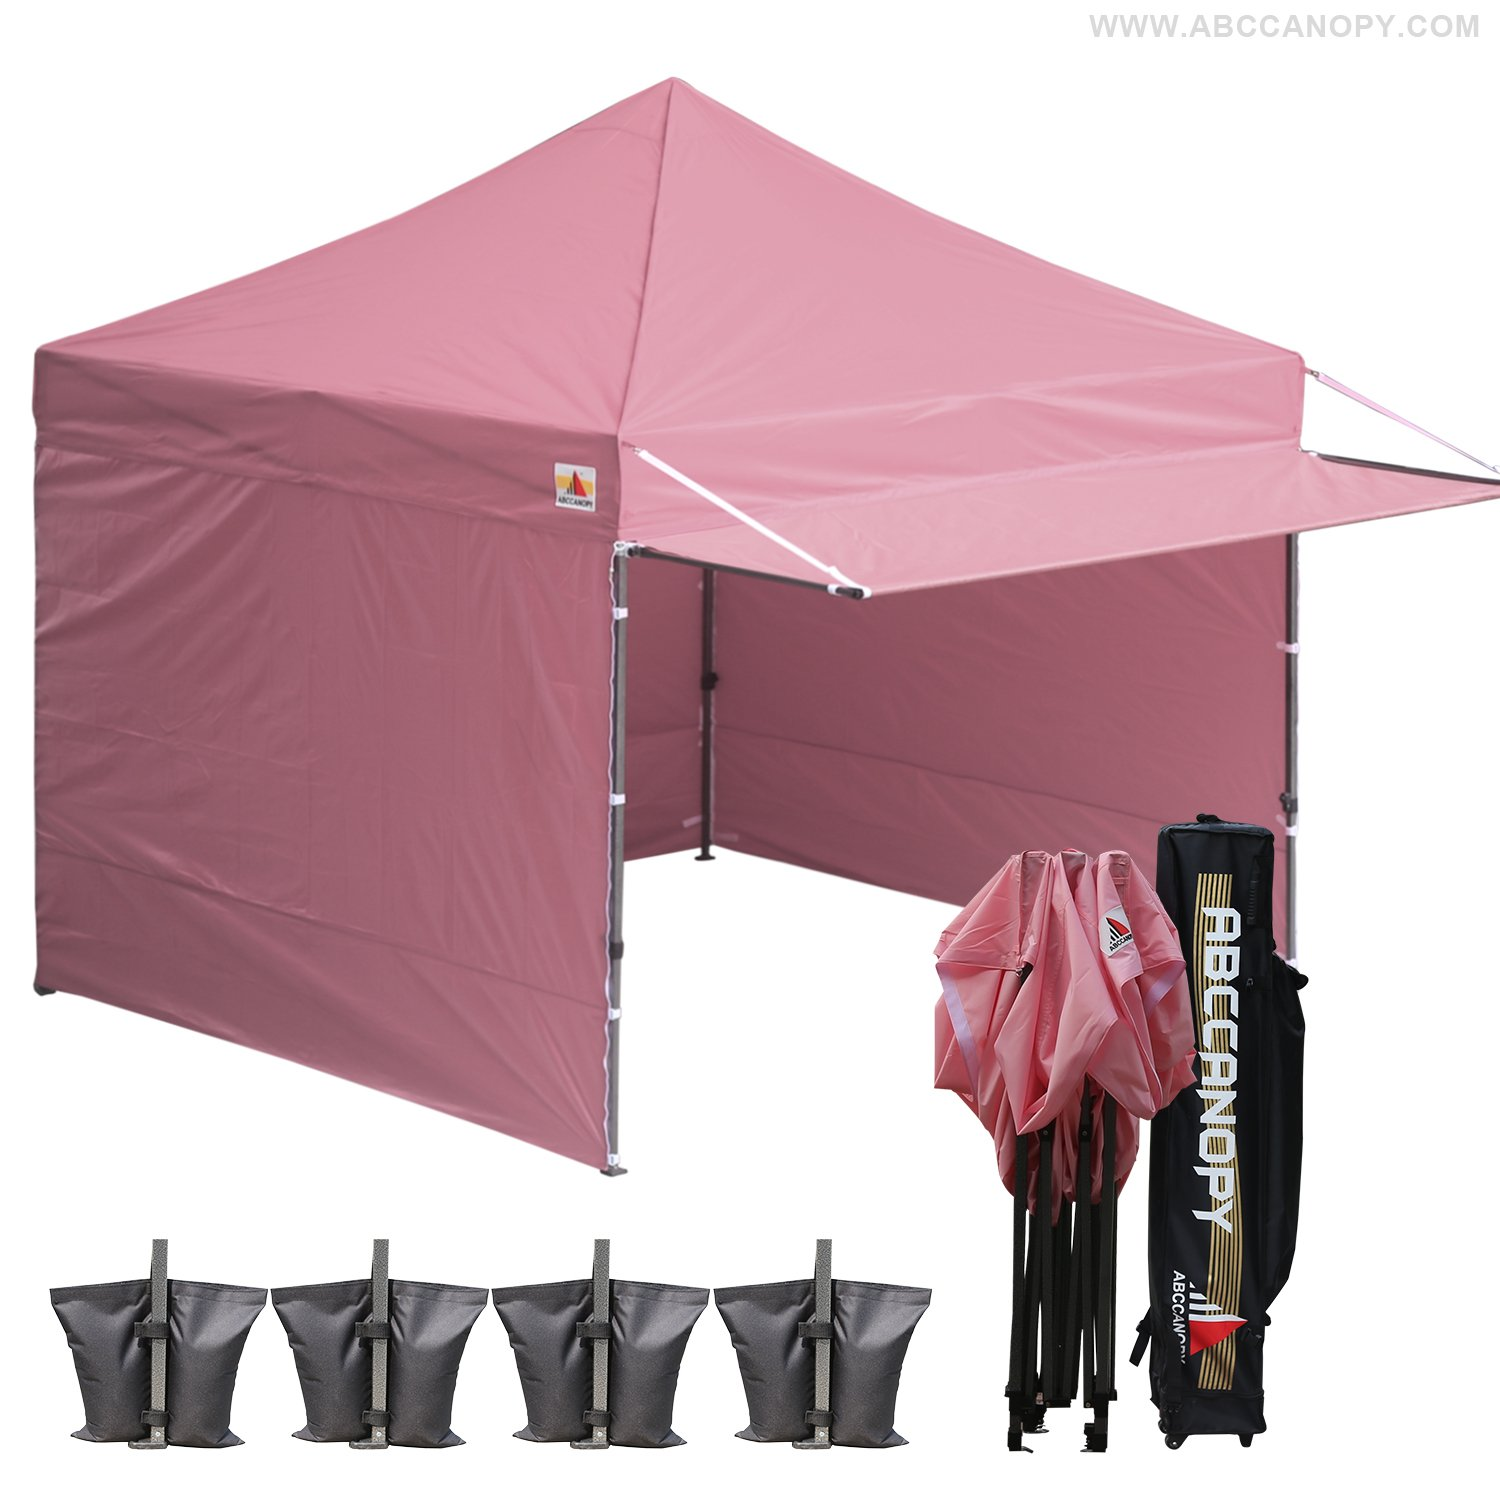 AbcCanopy 10 x 10 Pink Ez Pop up Canopy Ourdoor Party Tent Gazebo With 3 Removable Zipper Sidewalls and 1 Removable Zipper Doorwall BOUNS Canopy awning and Roller Bag